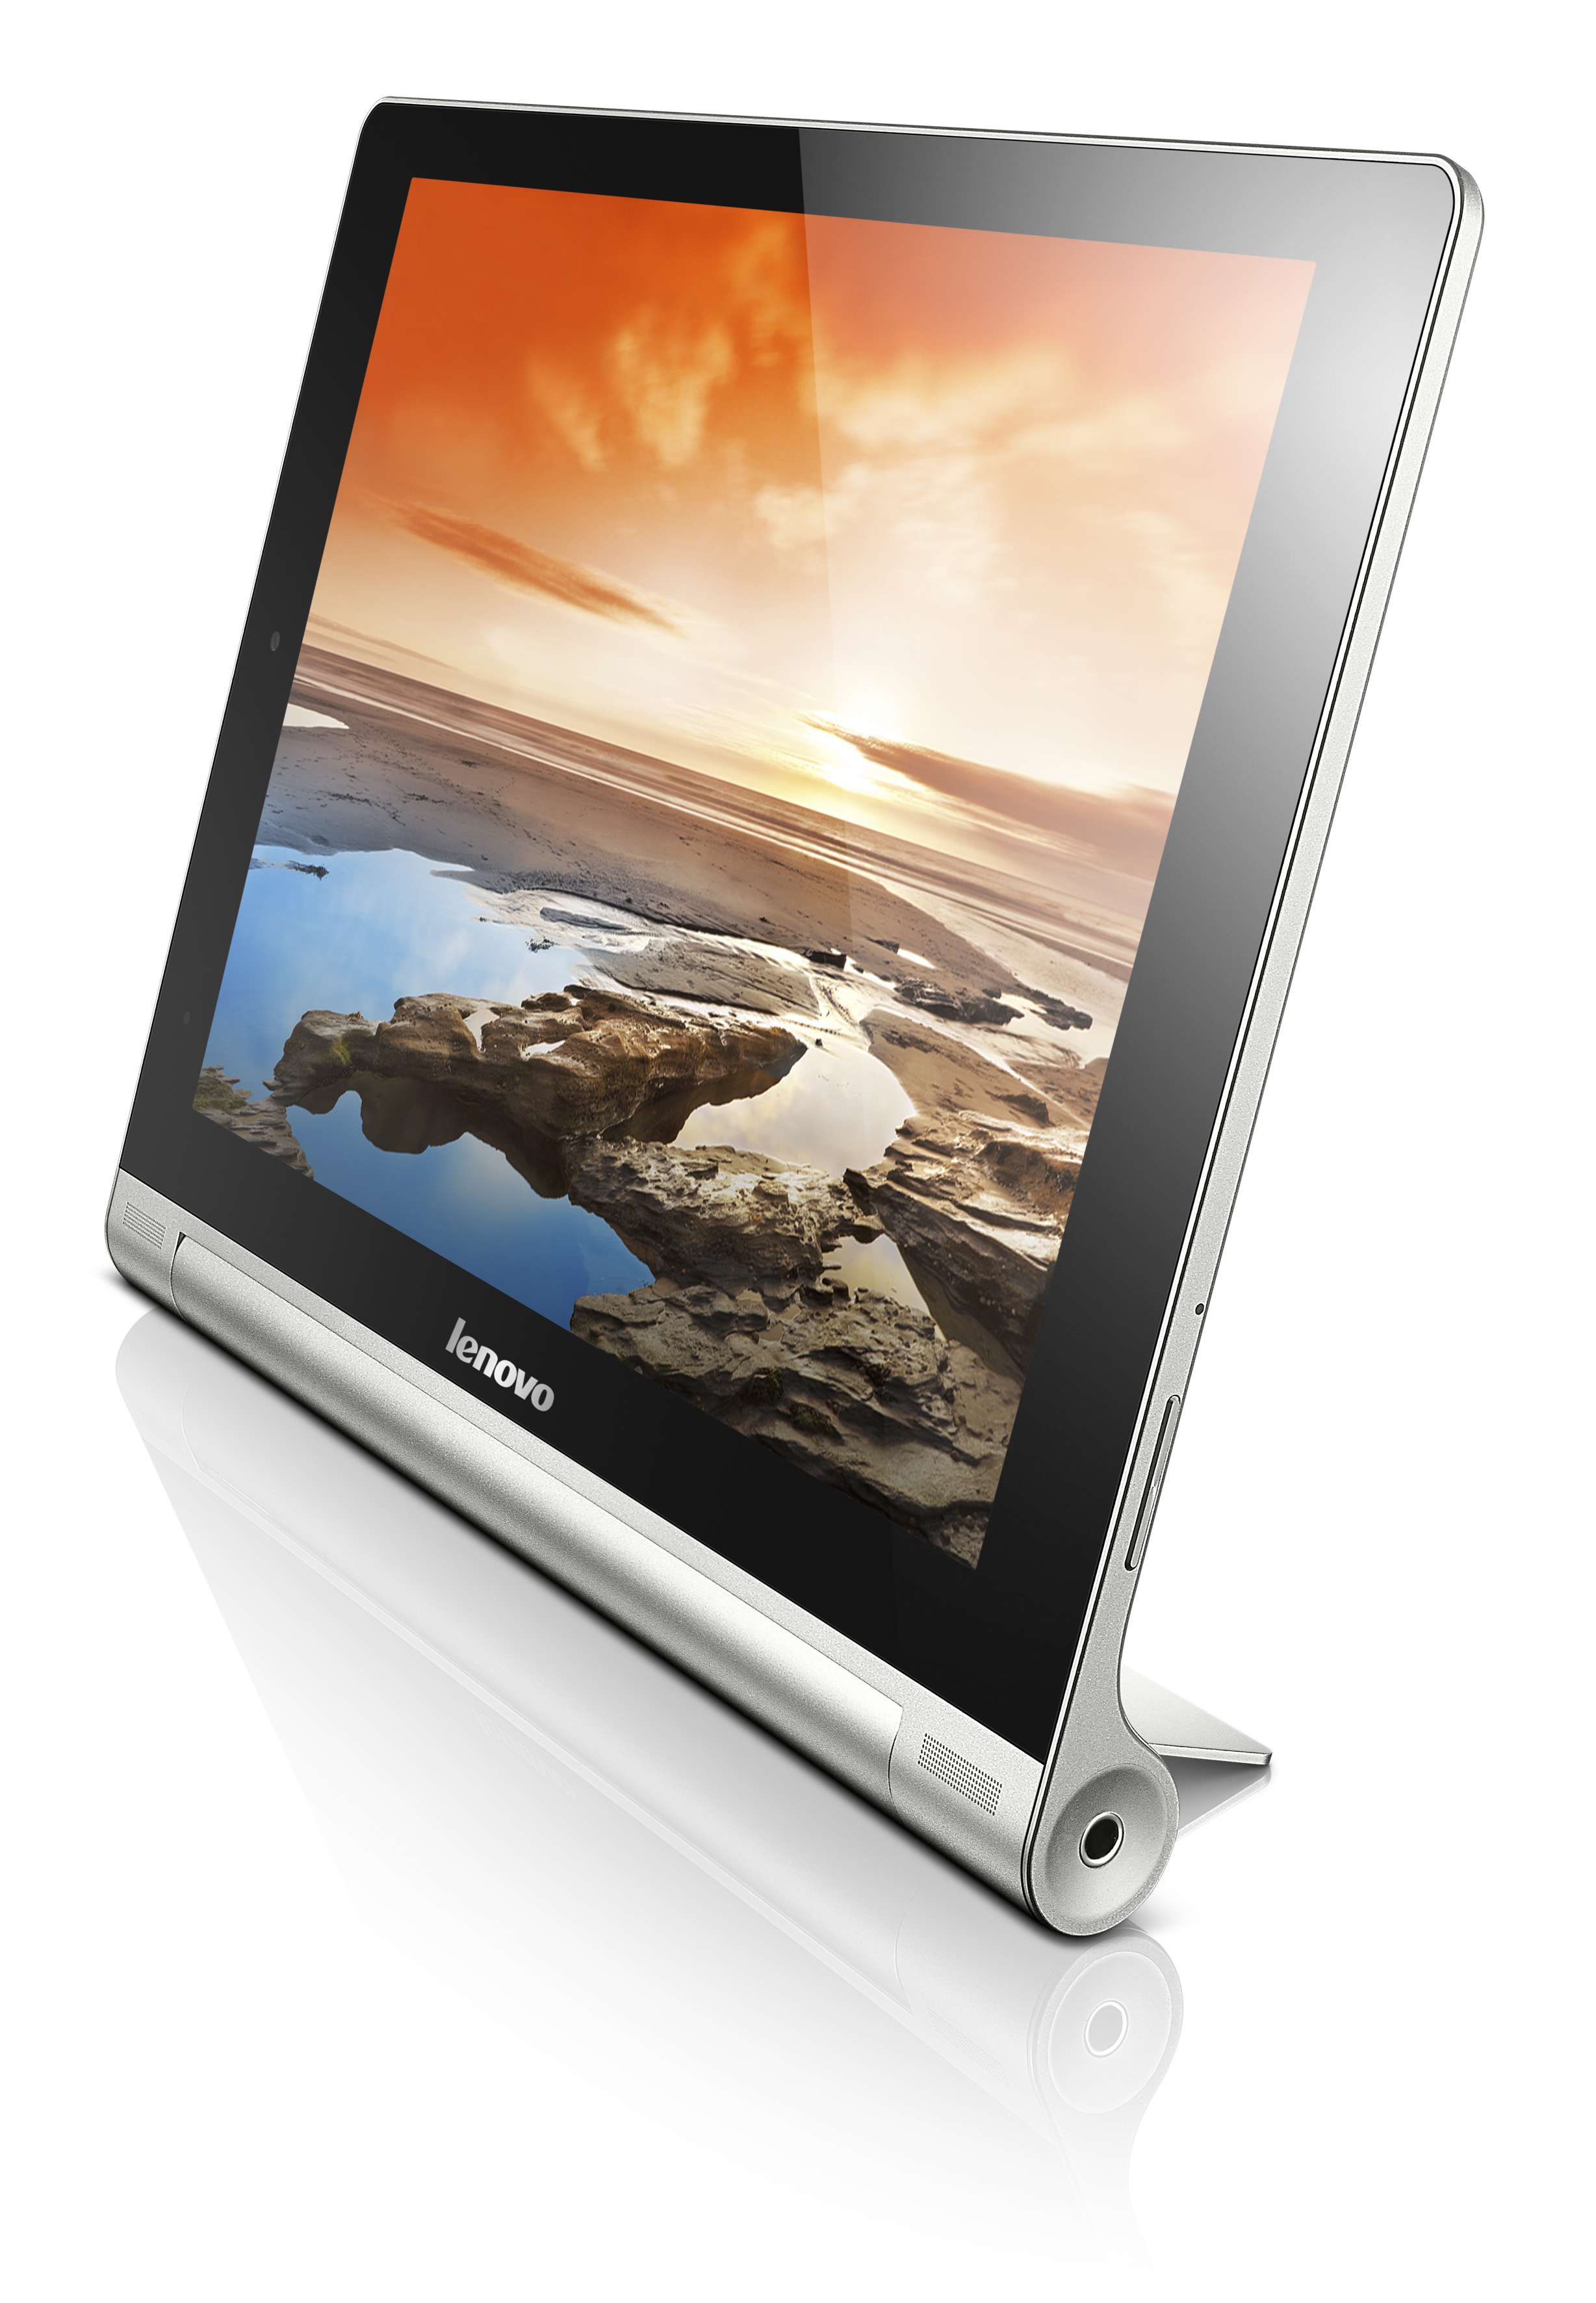 Lenovo's Yoga Tablet is an Android-Powered Multimode Device